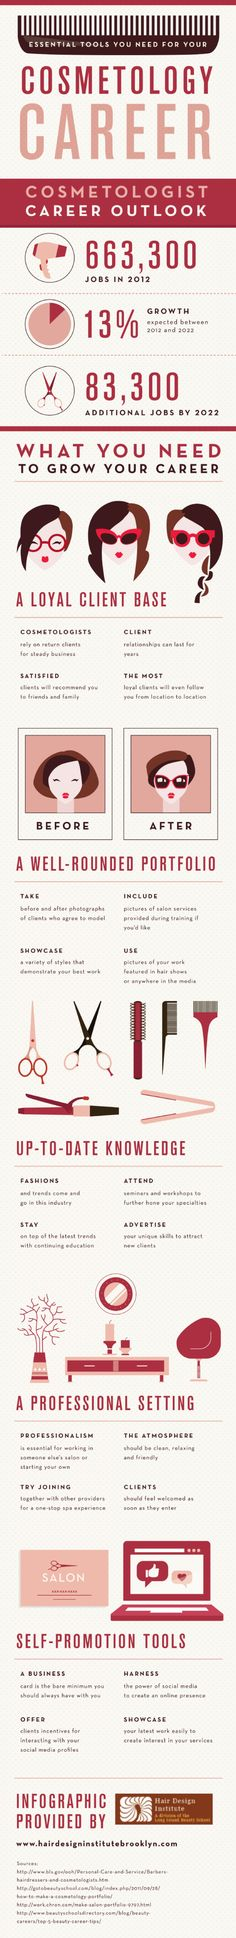 Essential Tools You Need for Your Cosmetology Career Infographic